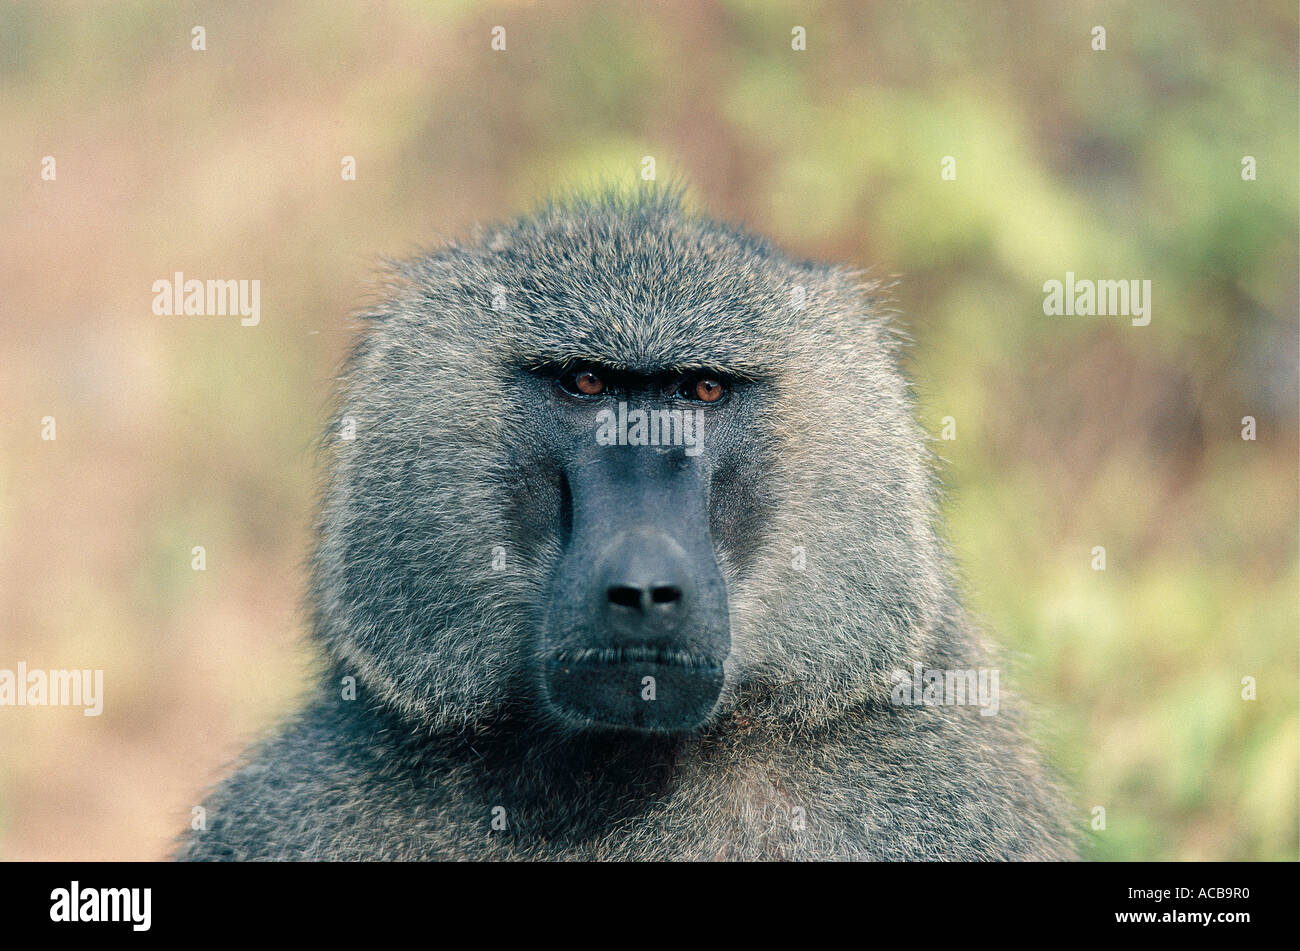 Portrait of male Olive Baboon Lake Manyara National Park Tanzania East Africa - Stock Image